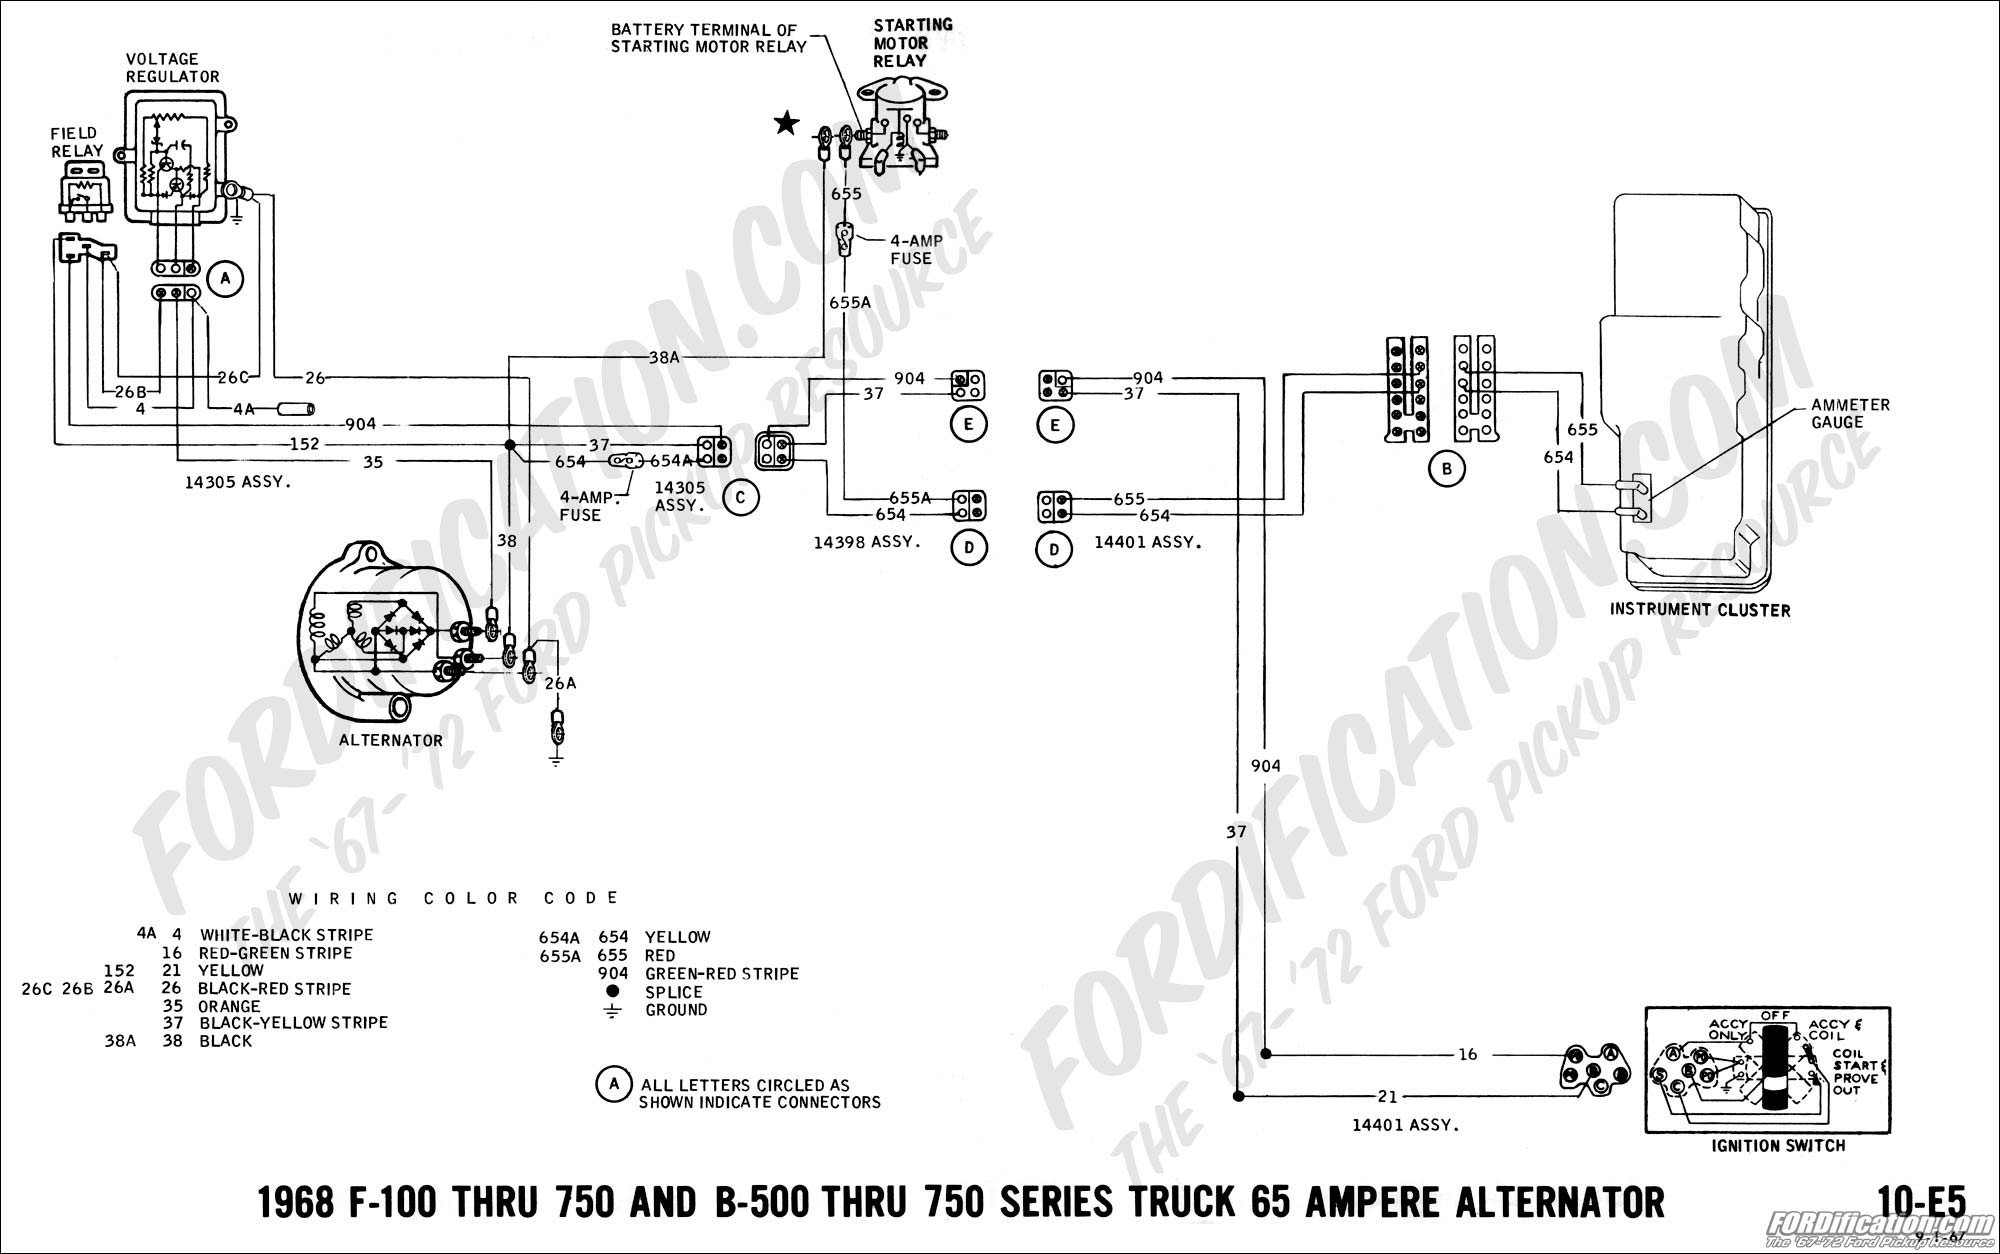 Charging System Wiring Diagram Chevy Cavalier Ford Further 1970 Truck Of